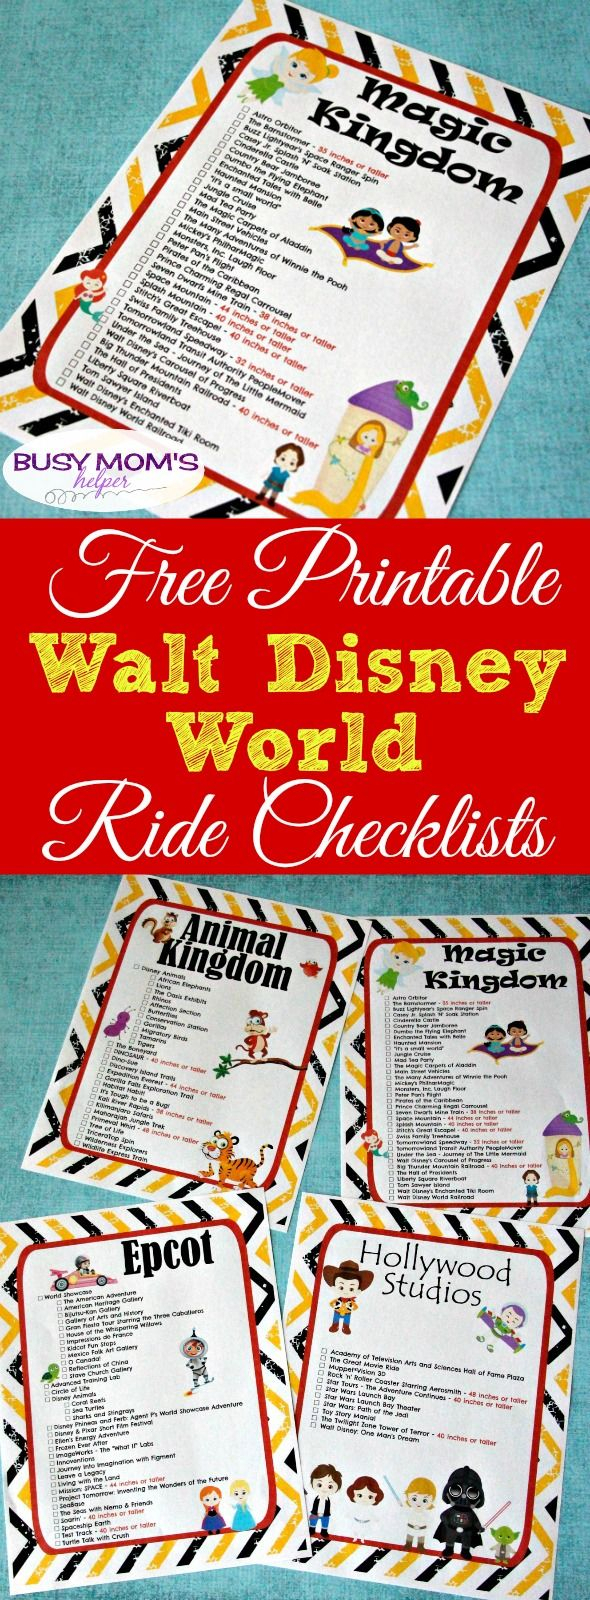 Free Printable Walt Disney World Ride Checklists | Disney